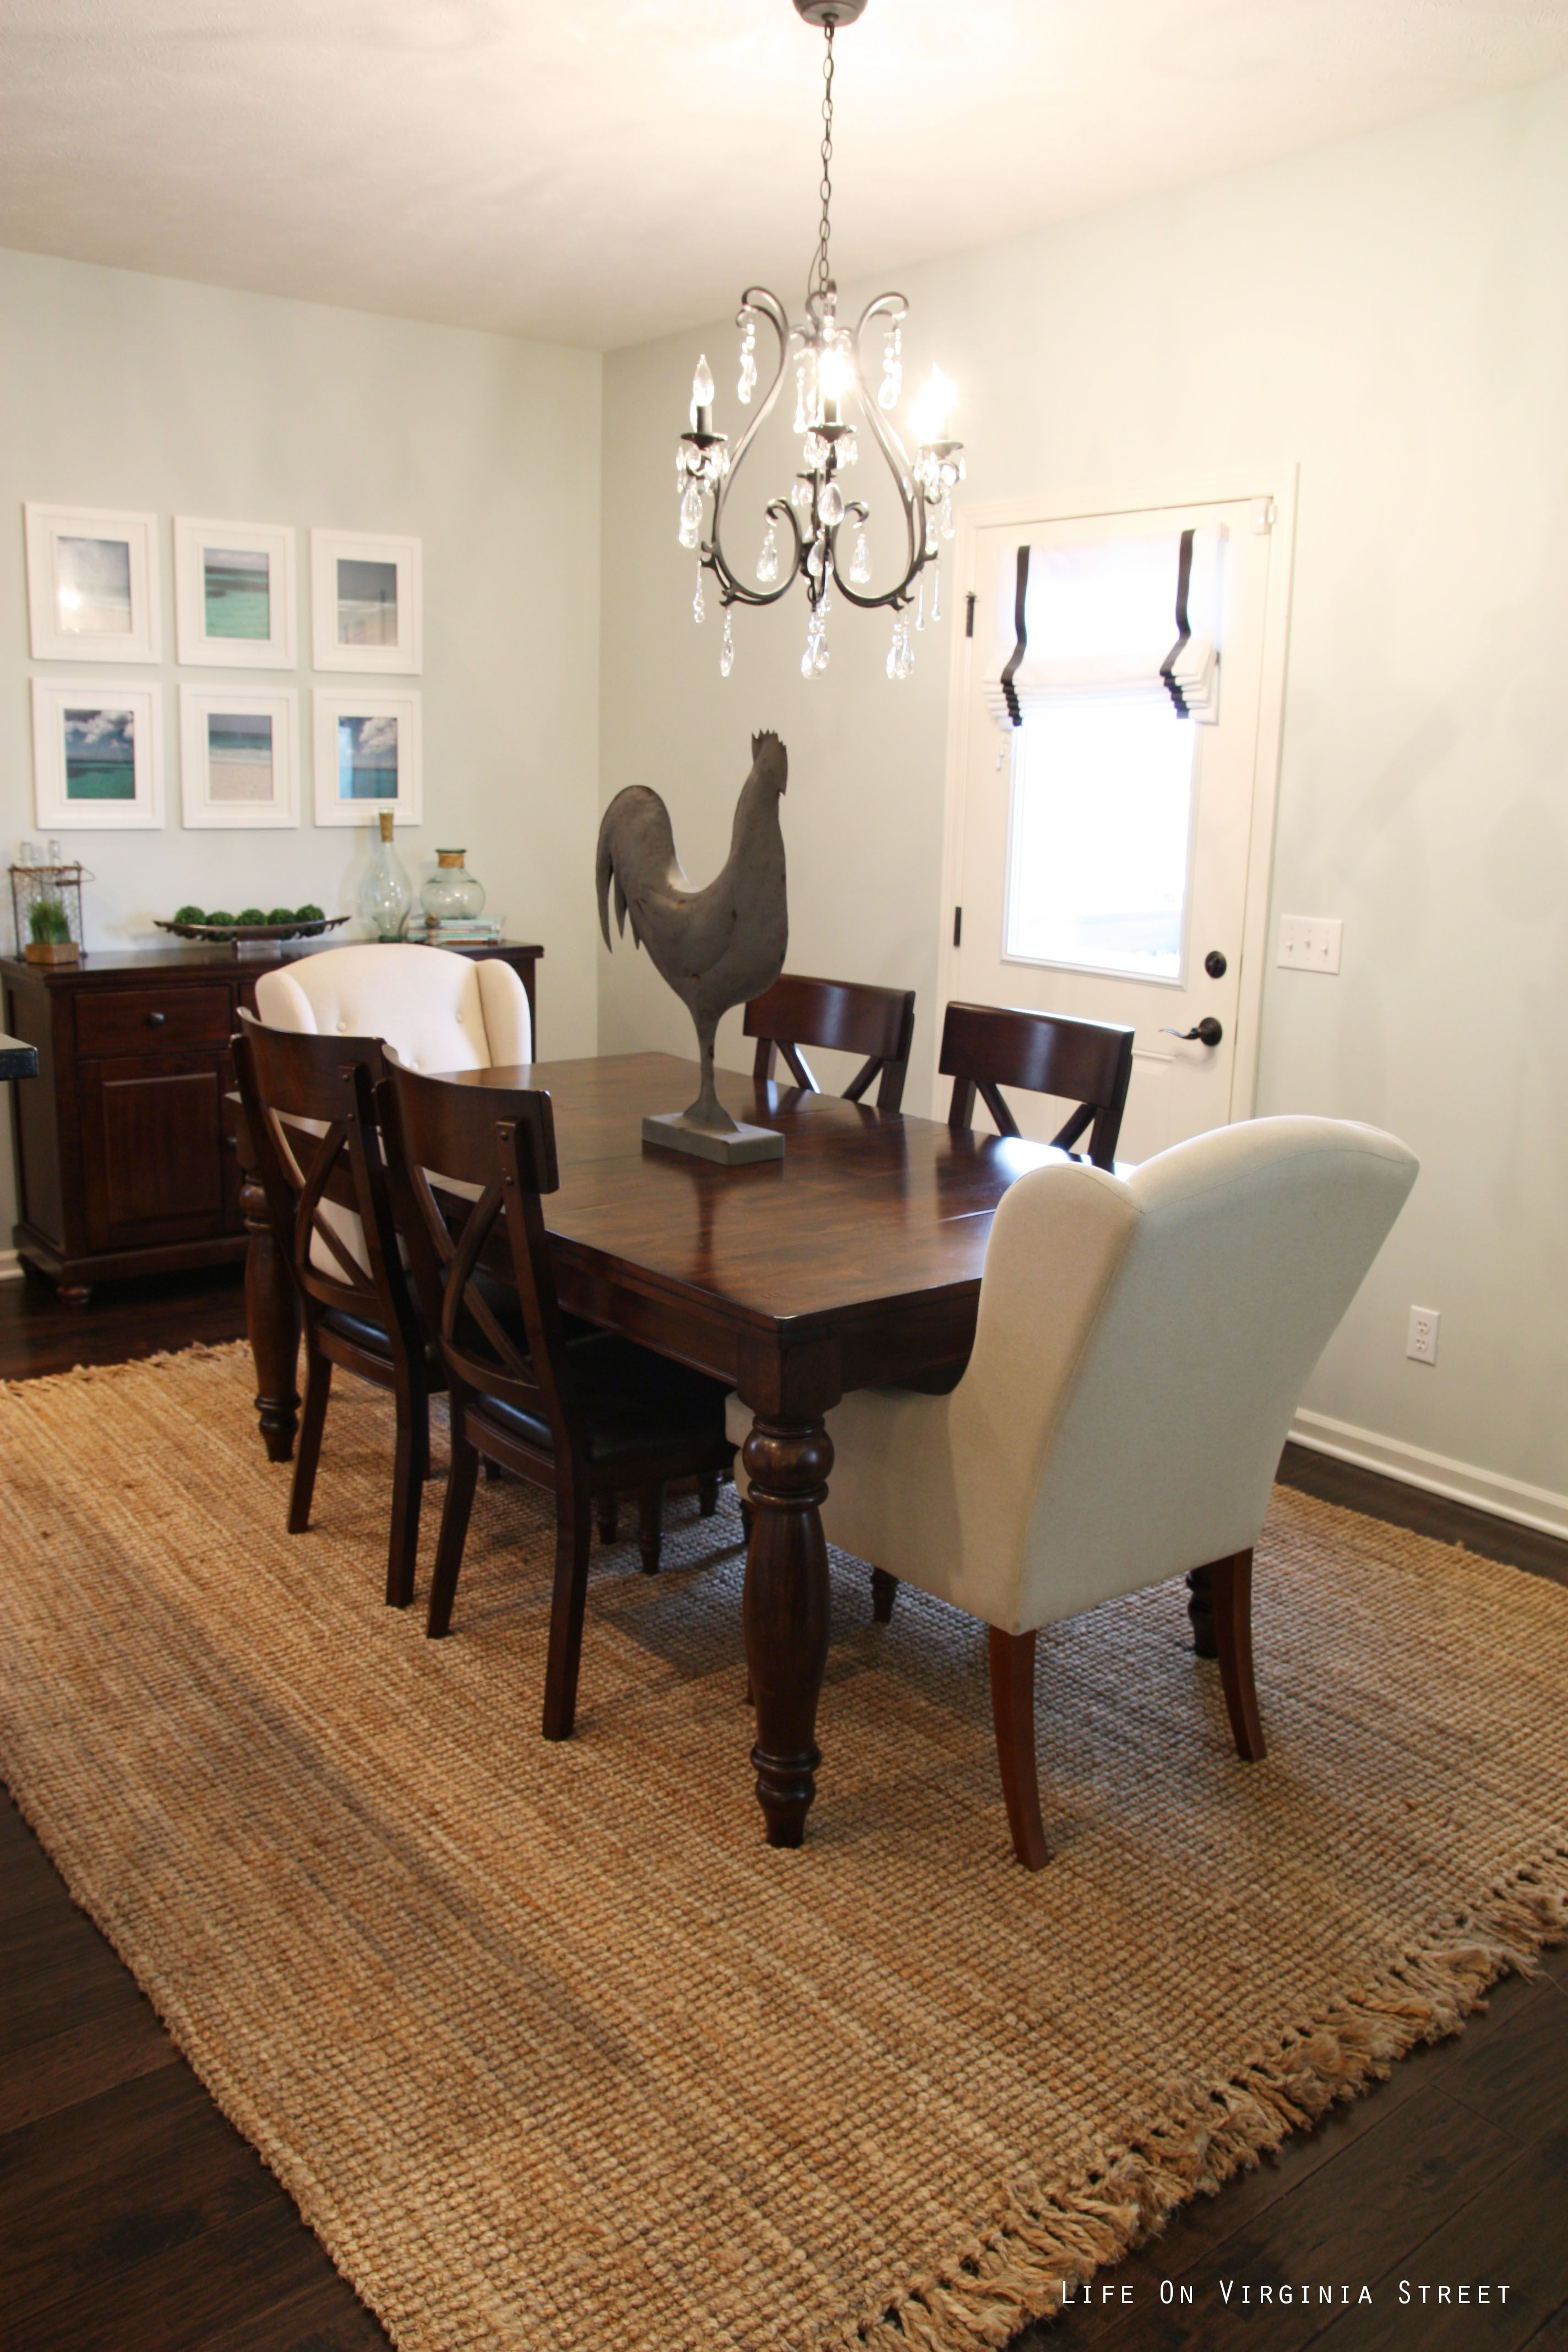 A Jute Rug And Grainsack Upholstery On The Chairs Would Be Gorgeous Jute Rug In Dining Room Inspiration Design